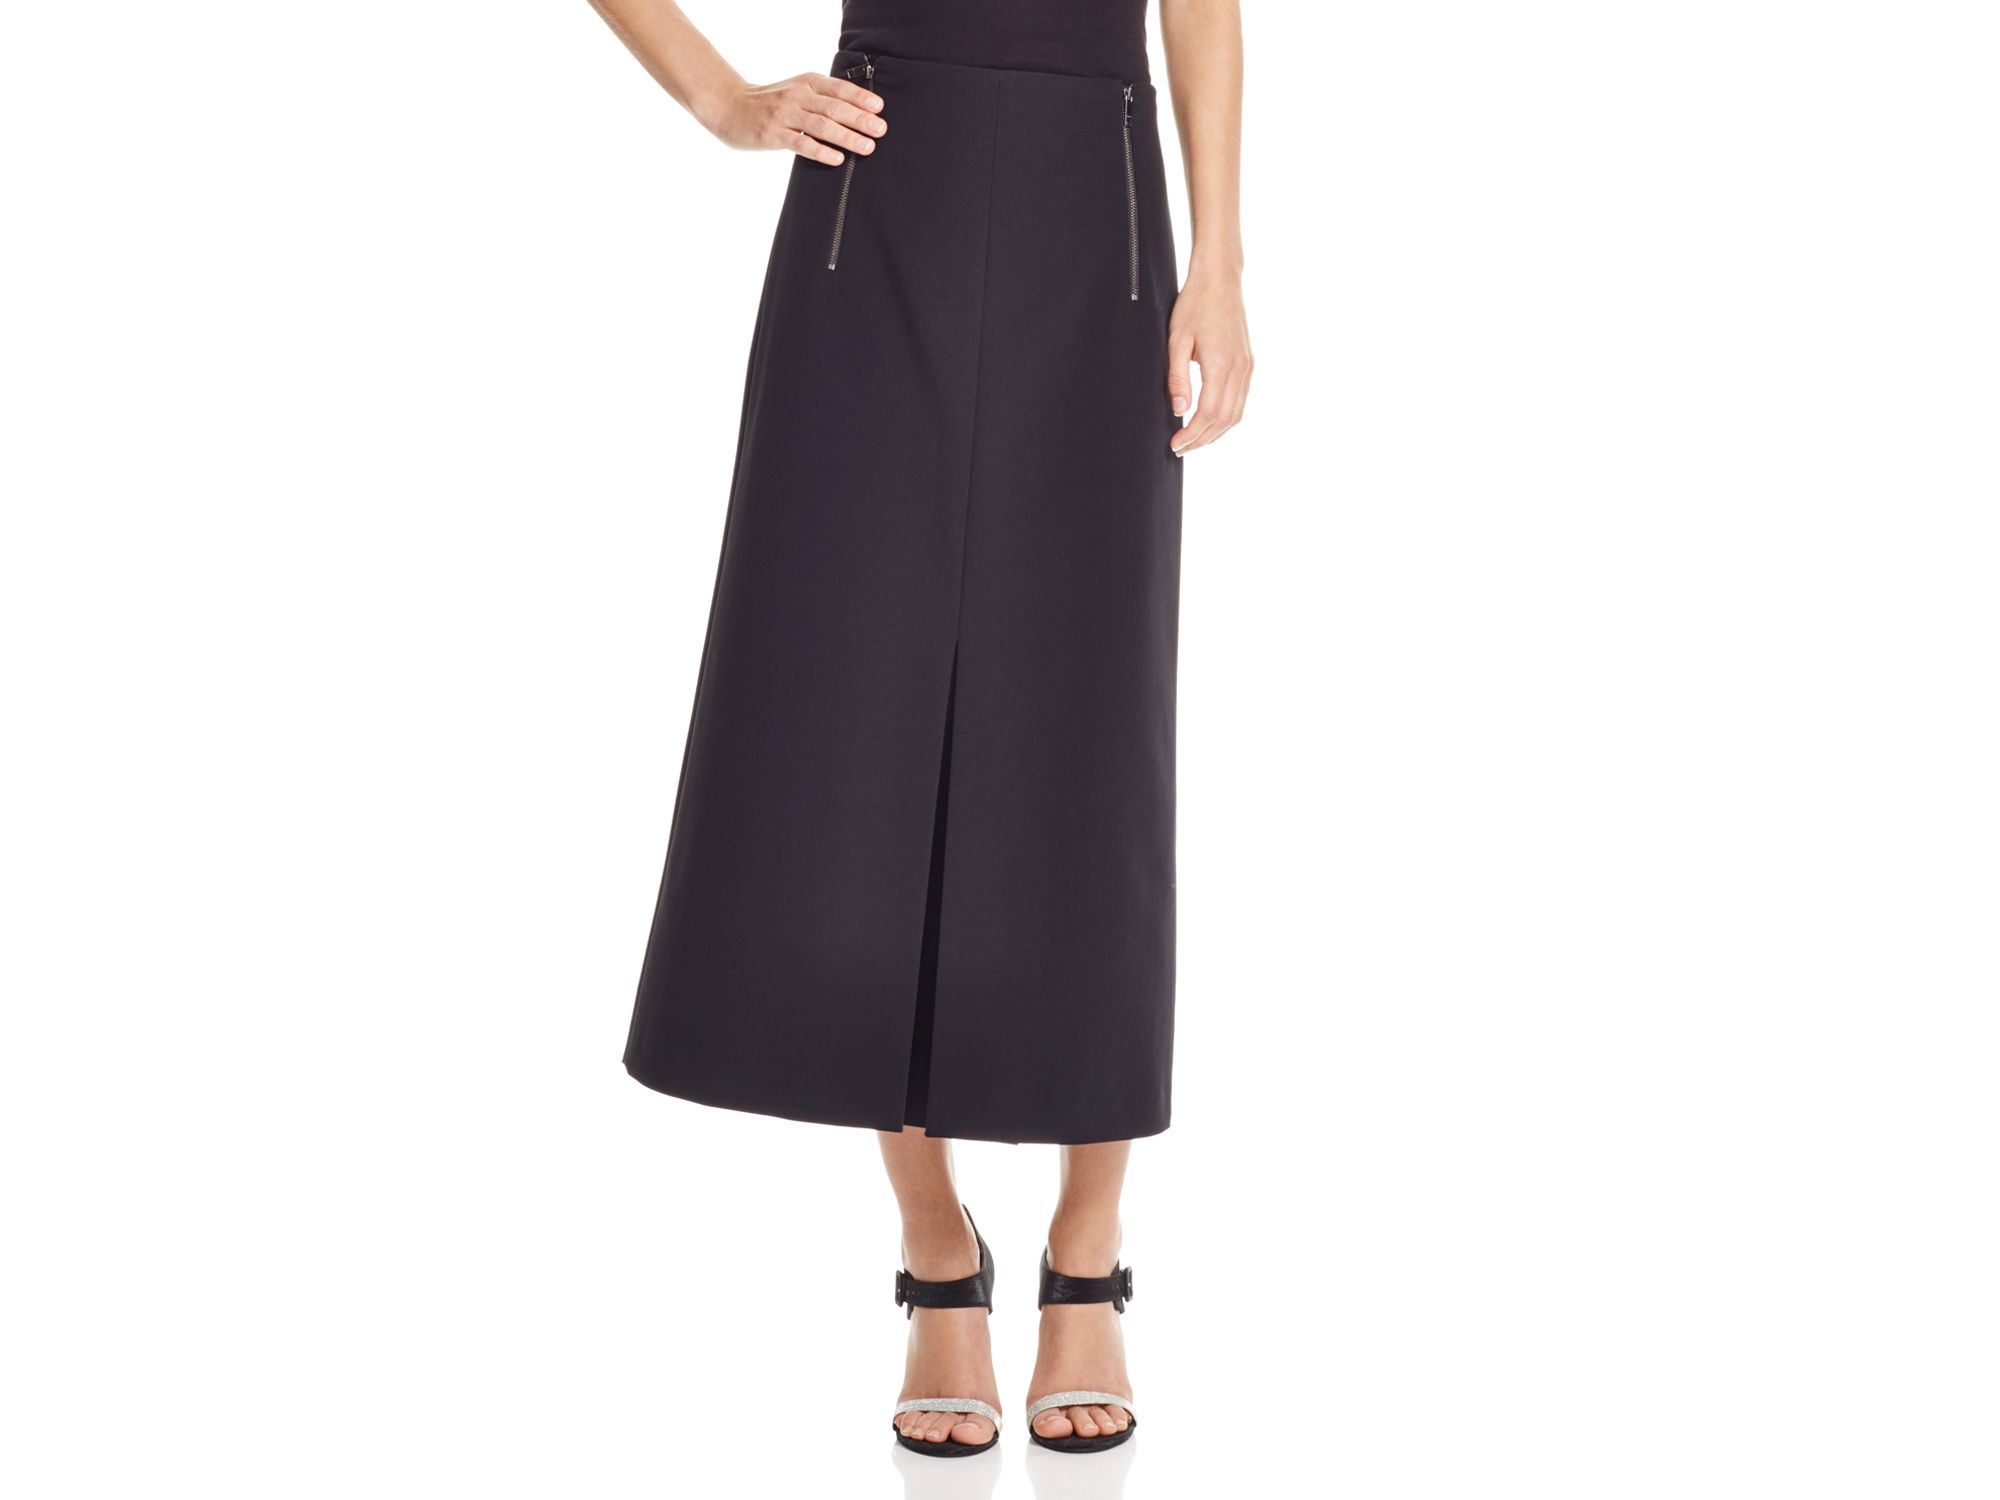 innovative design 2019 authentic top quality DKNY Black Zip Front Pleated Midi Skirt